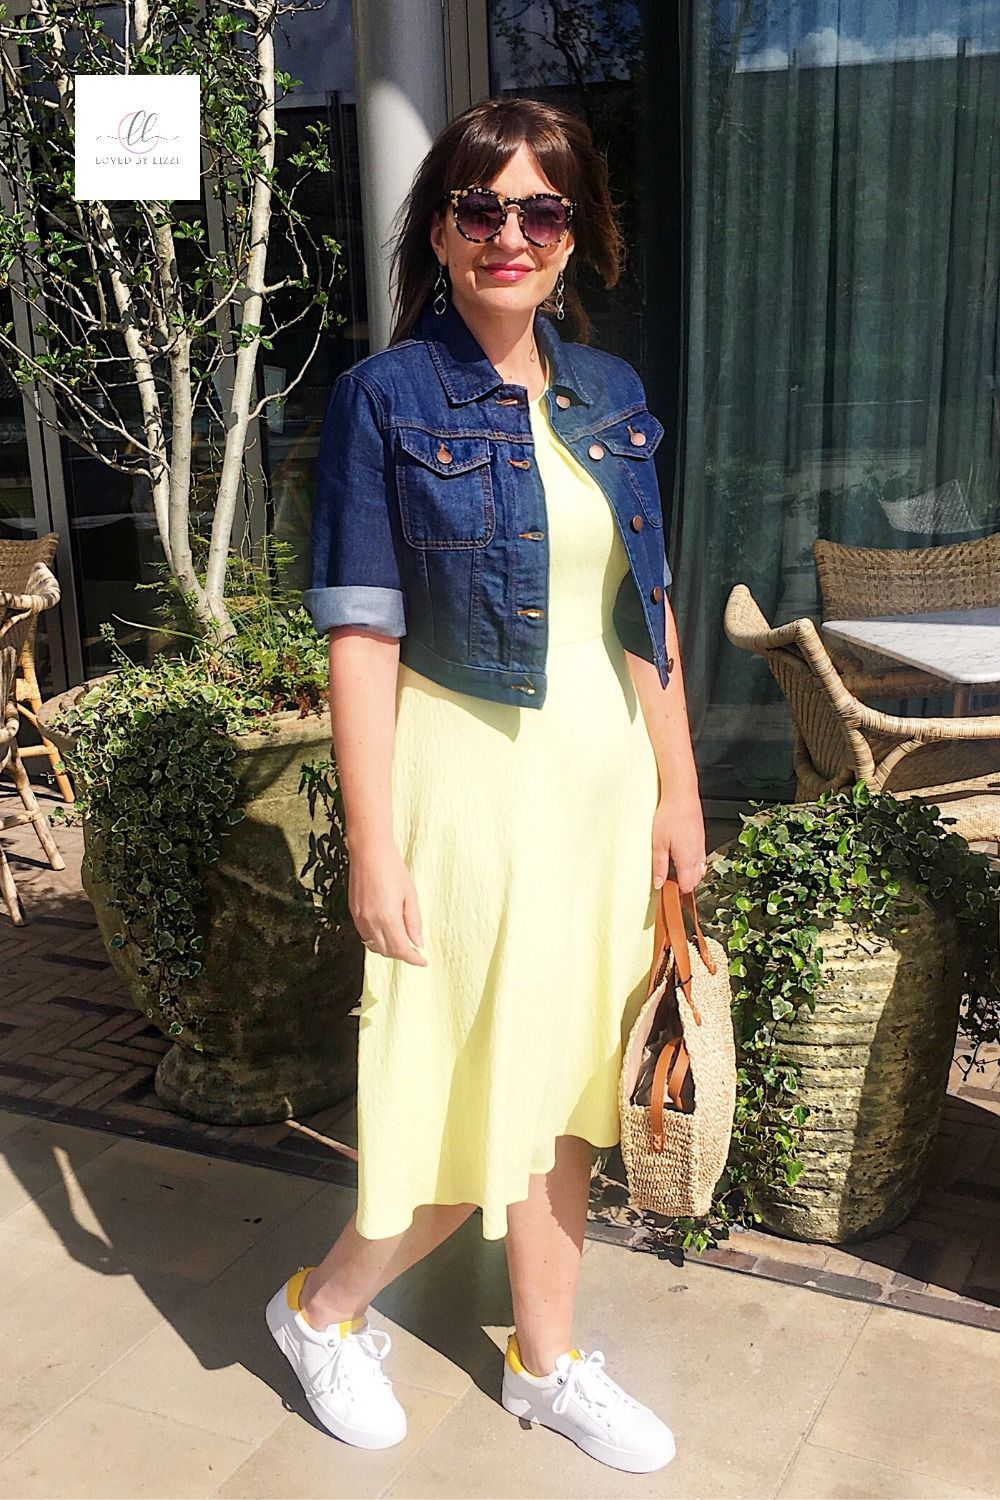 It was fab working with John Lewis & Partners style team in OXFORD - we had so much fun styling this looks in May 2019. A dark denim can be a great colour in the summer, it really elevates this look. Gorgeous summer dress in yellow by Fenn Wright Mason. #springlook #outfitpost #springstyle #styledbylizzi